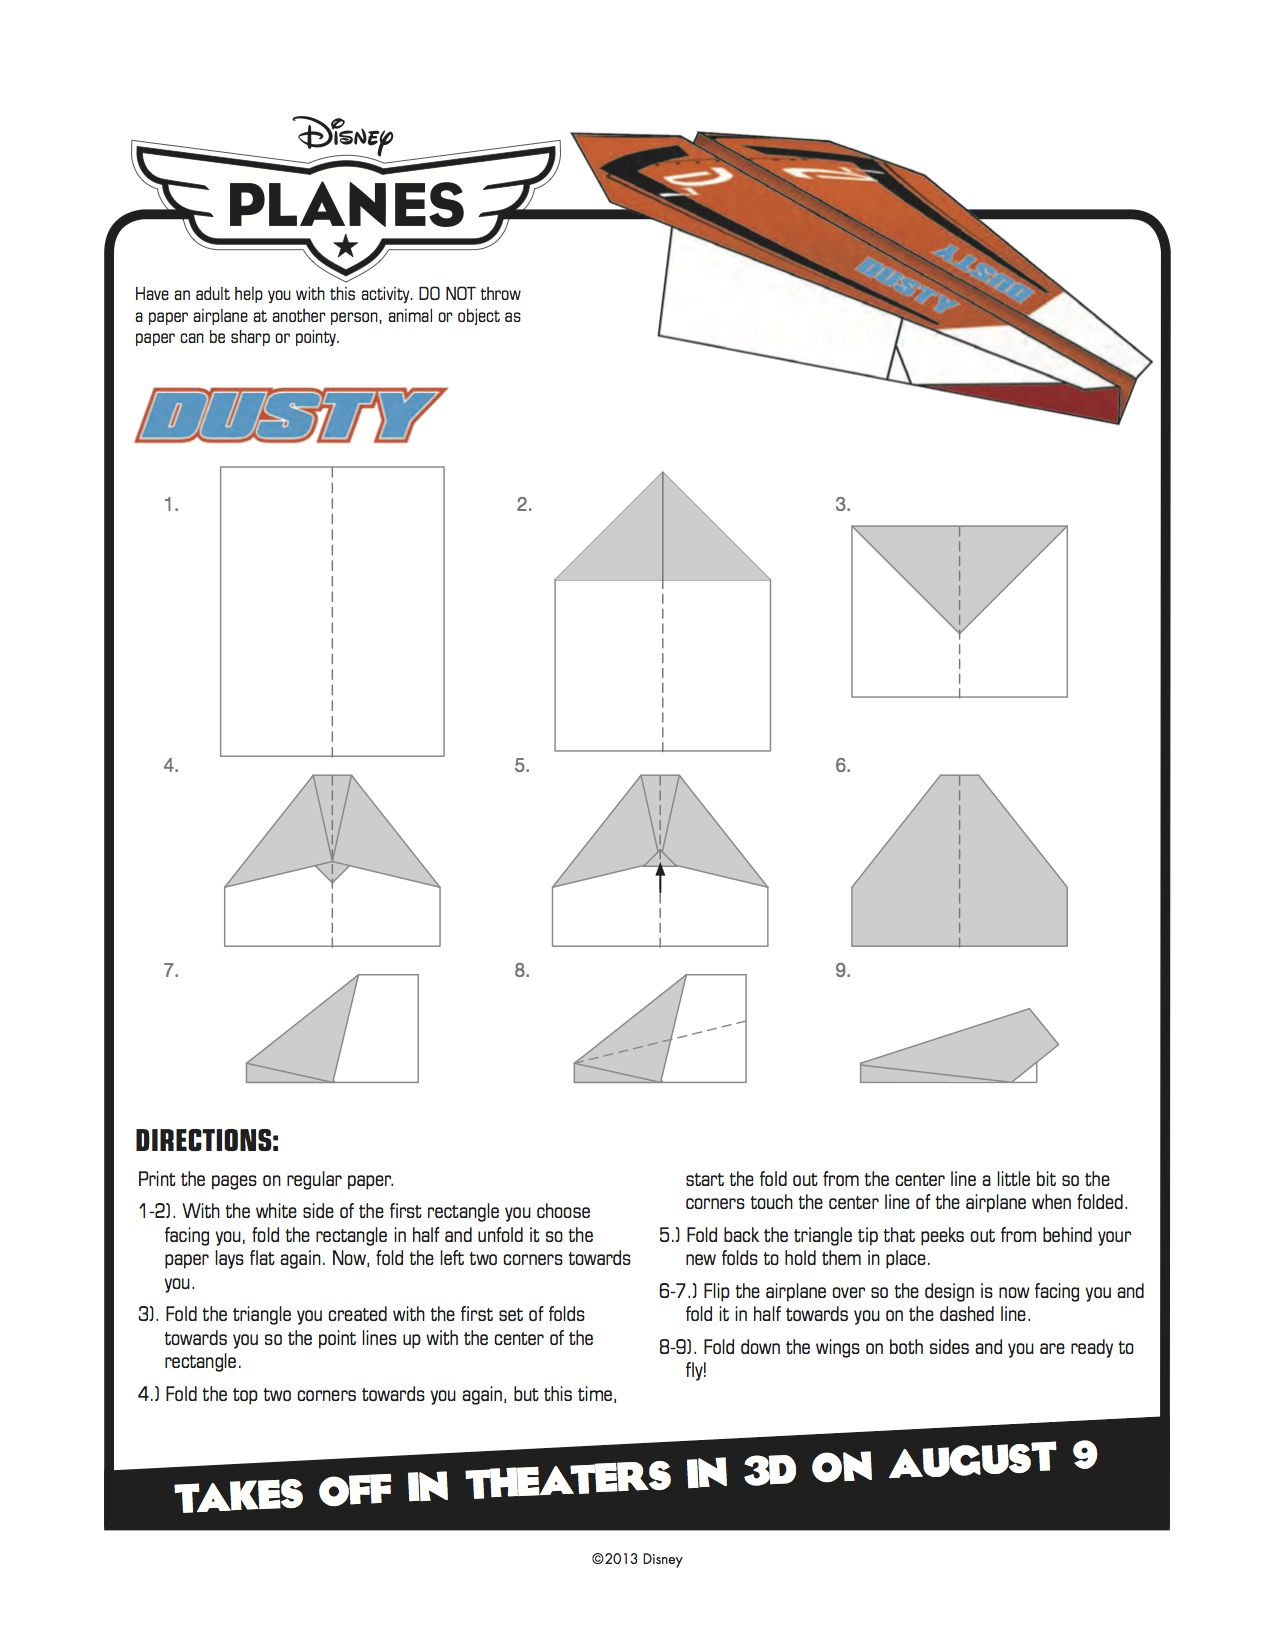 Disney Planes Printable Dusty Paper Airplane Craft Paper Airplanes Airplane Crafts Disney Planes